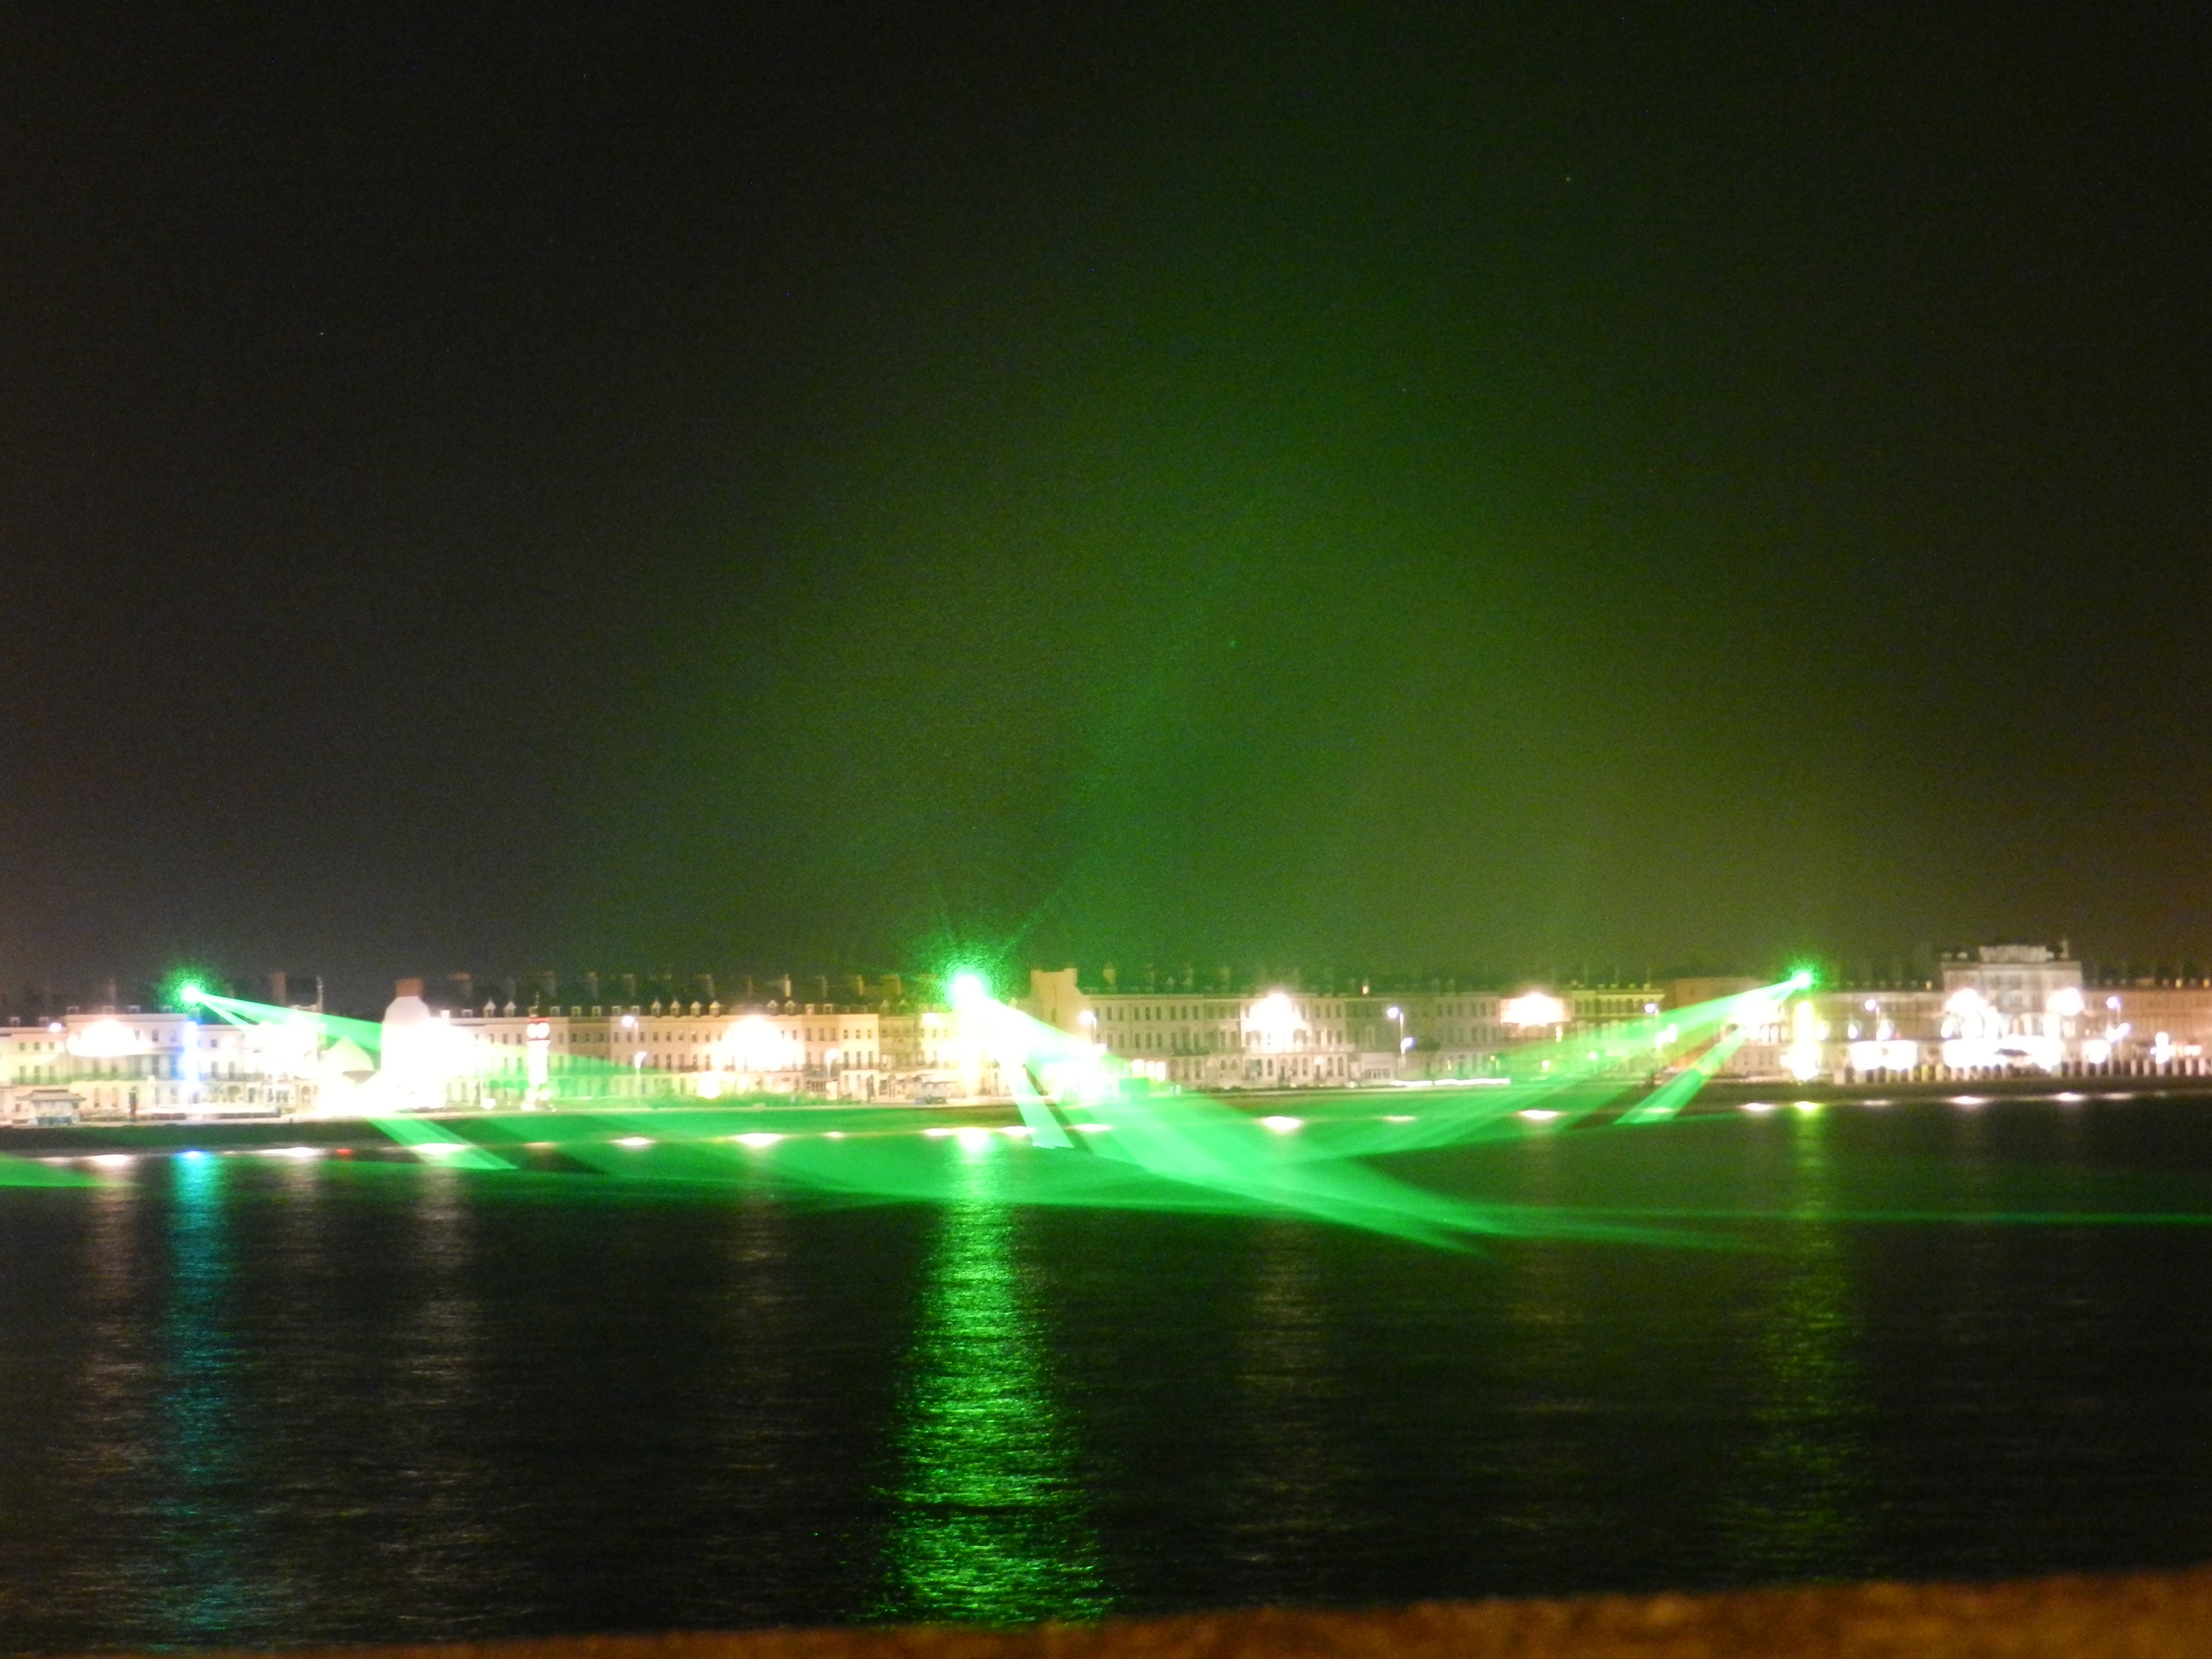 Lasers_230512_045